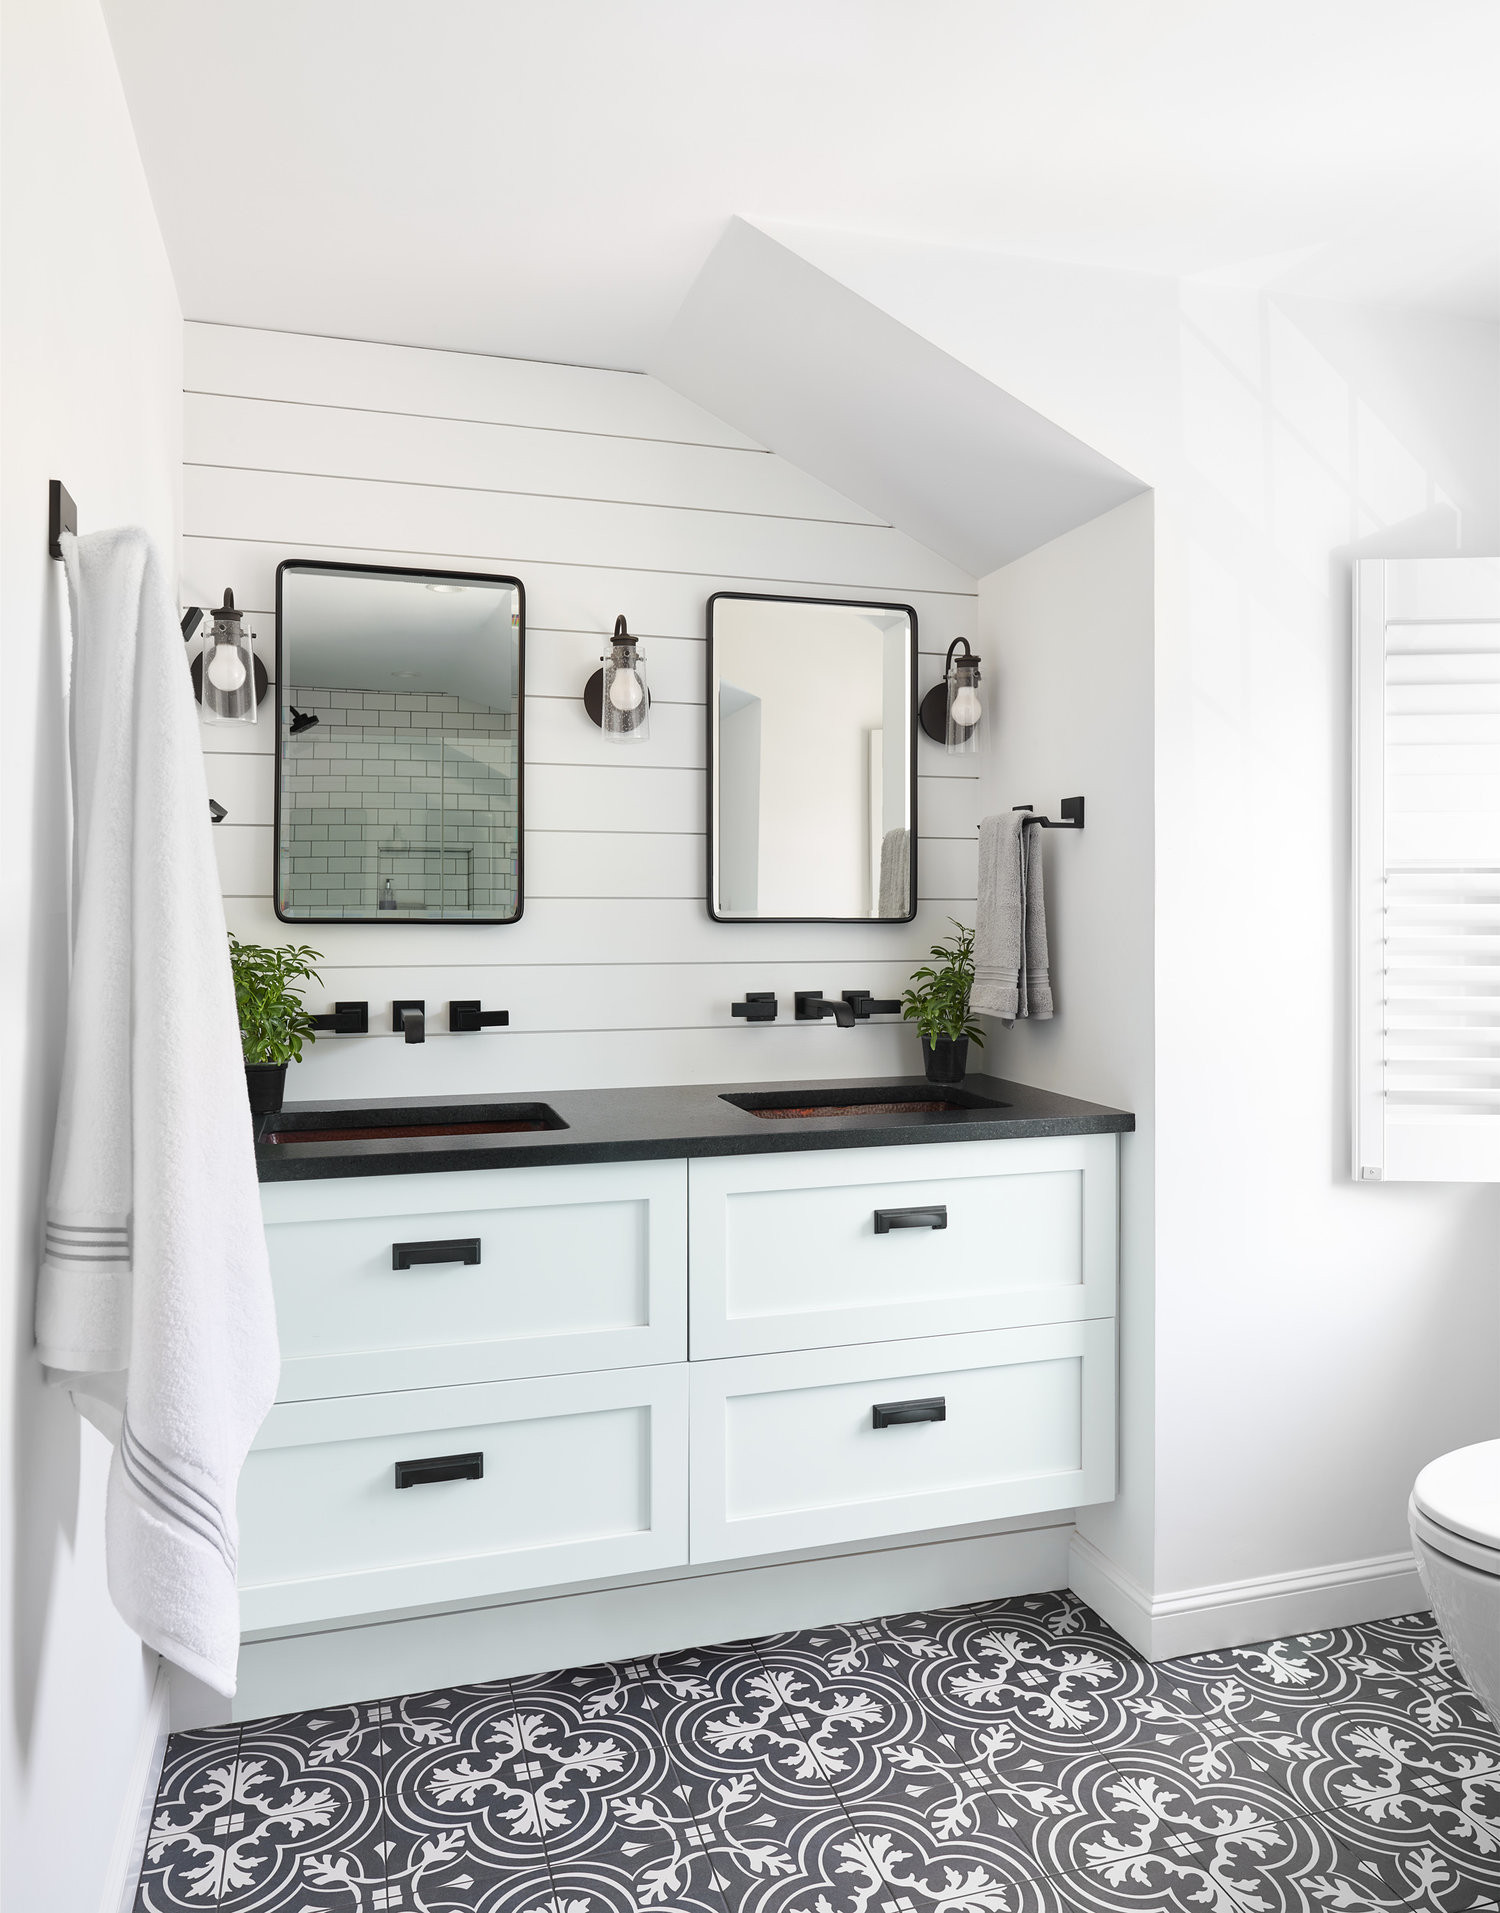 75 Beautiful Bathroom With Black Countertops Pictures Ideas January 2021 Houzz